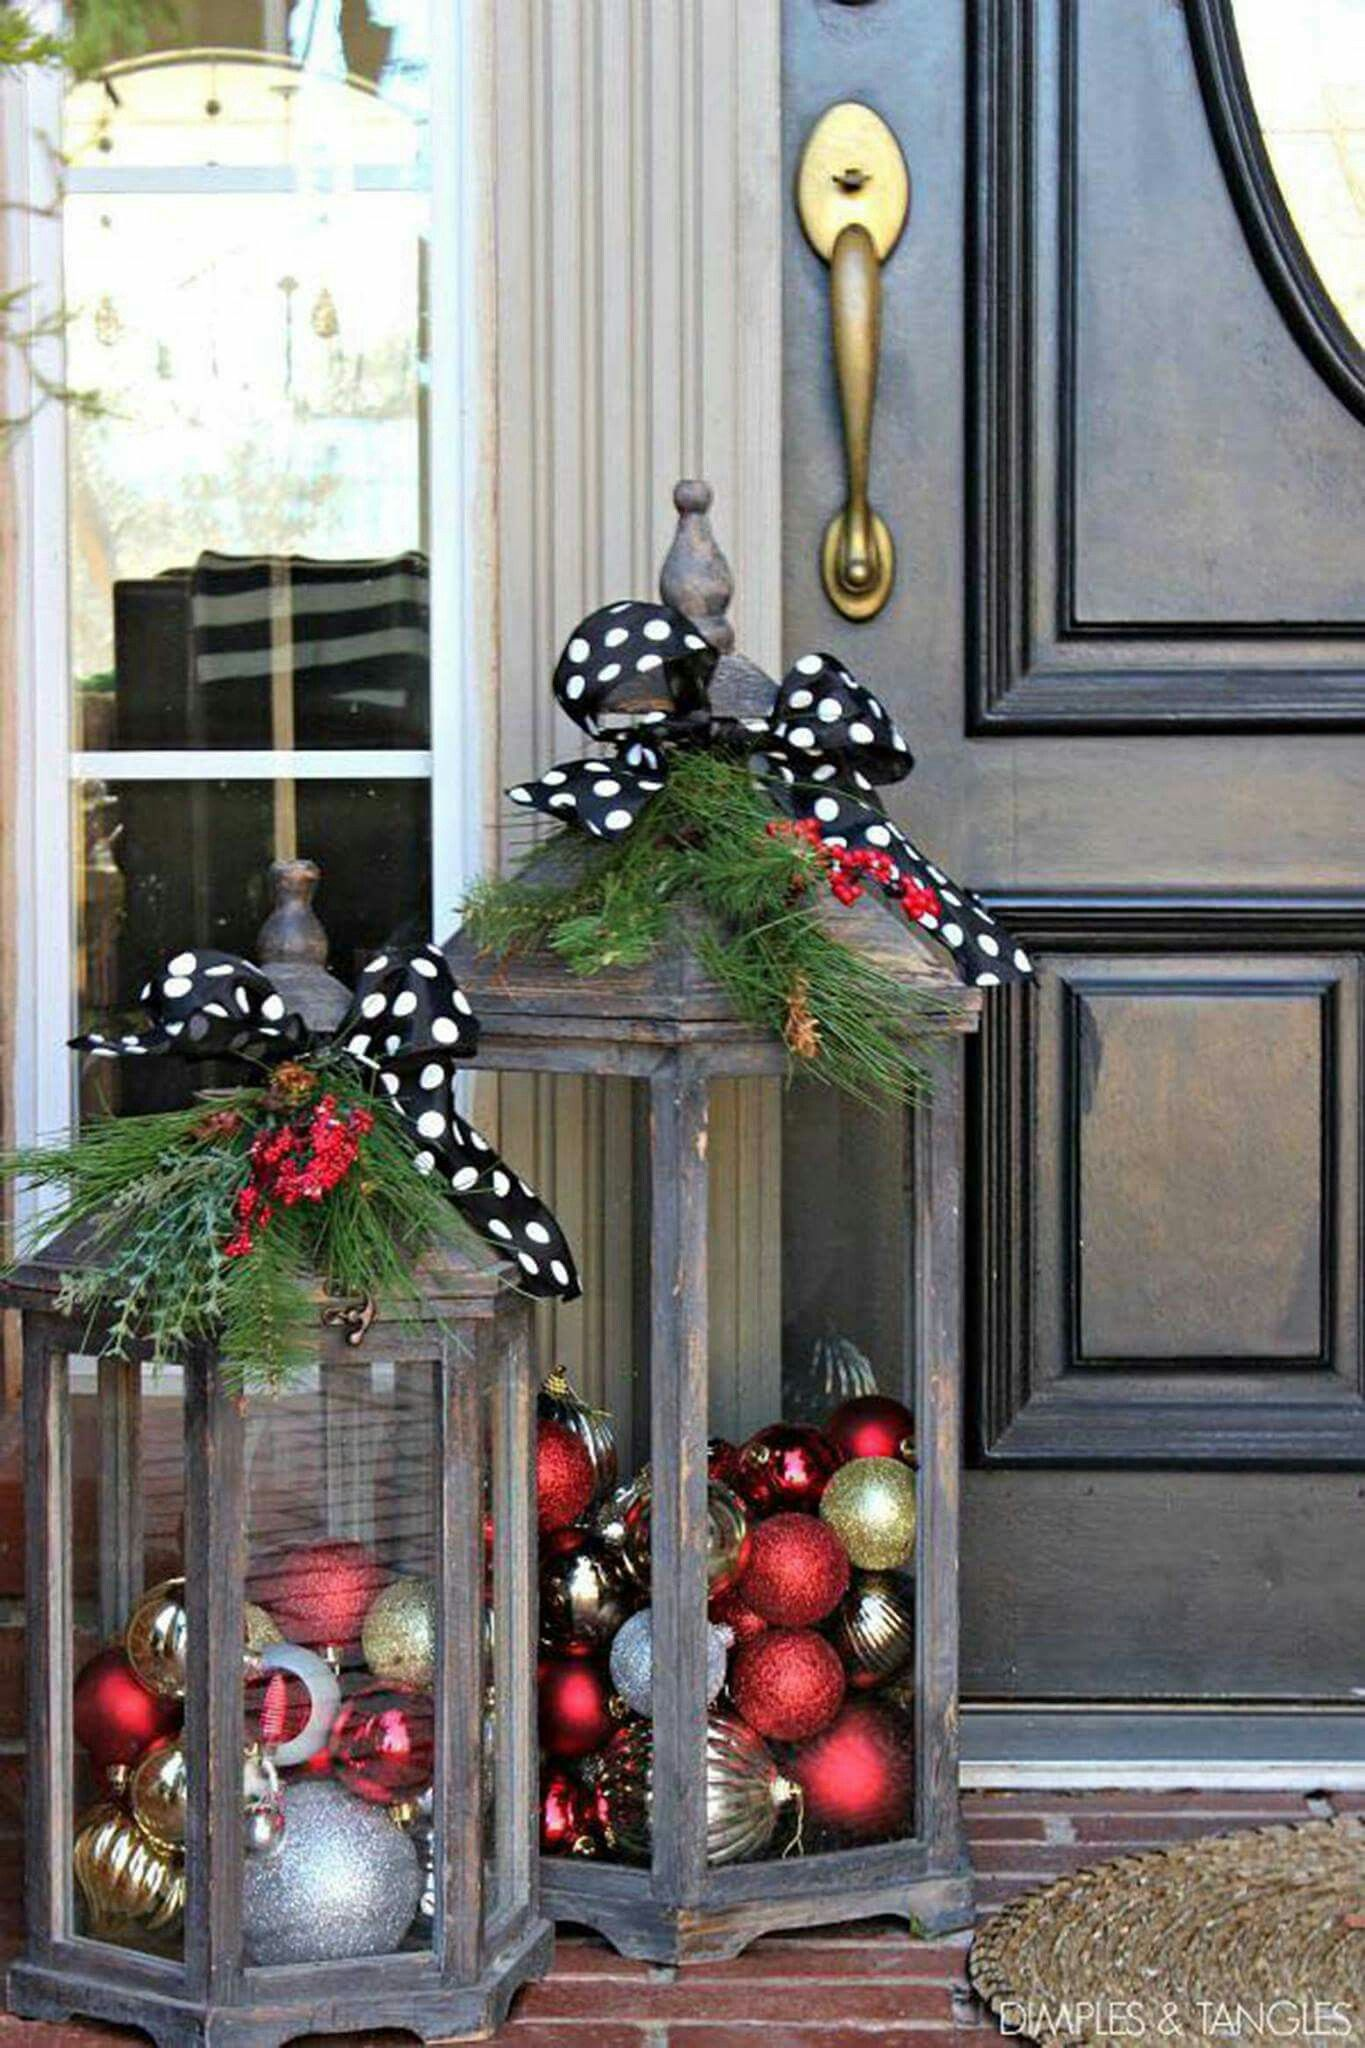 19 joyful christmas yard decorations that you have to see - Outdoor Porch Christmas Decorations